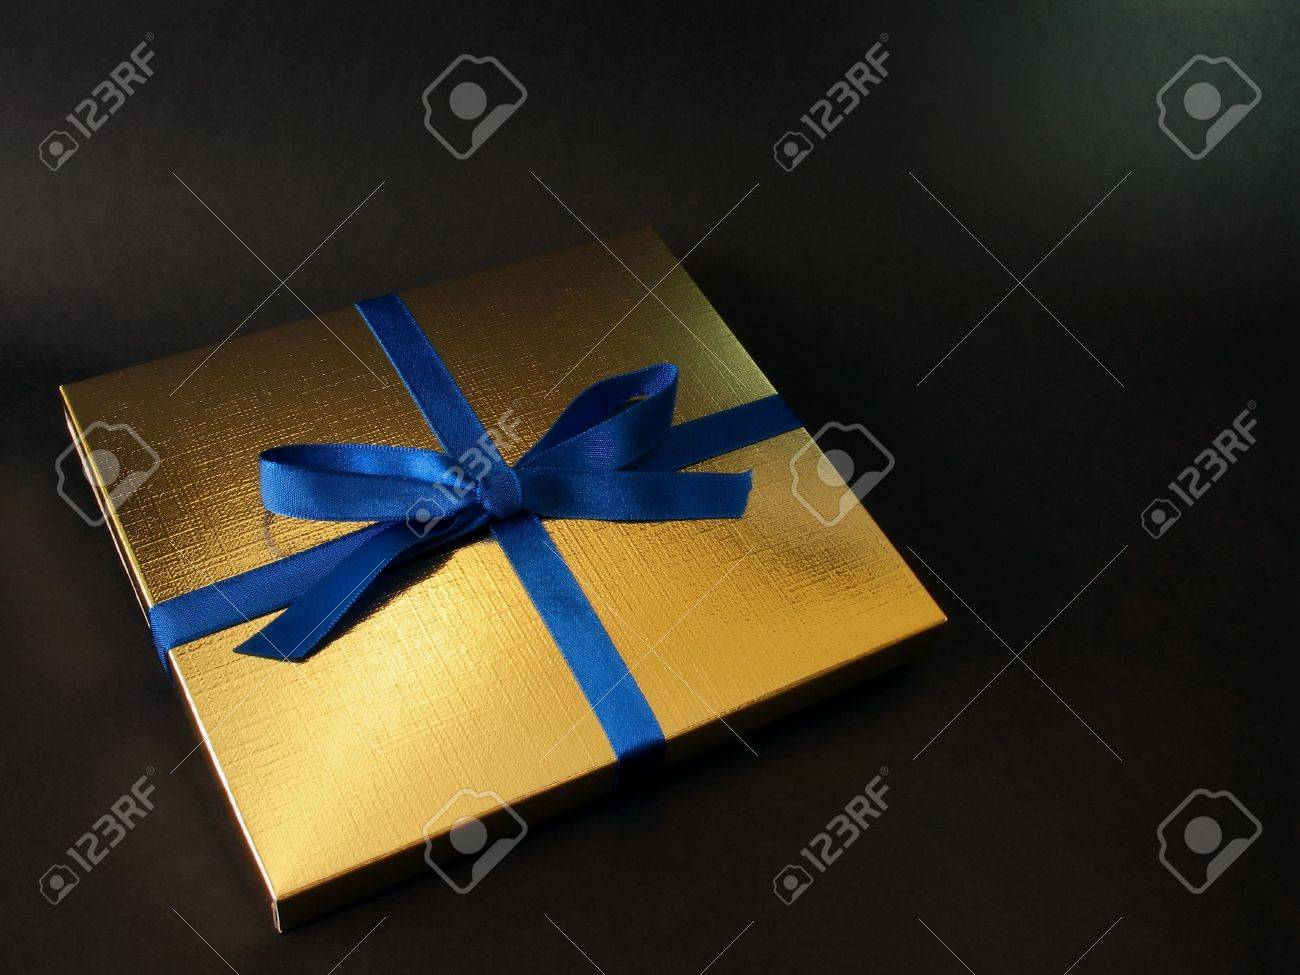 Close up view of a gold gift box with blue bow on black background, with copy space and exquisite lighting Stock Photo - 622785